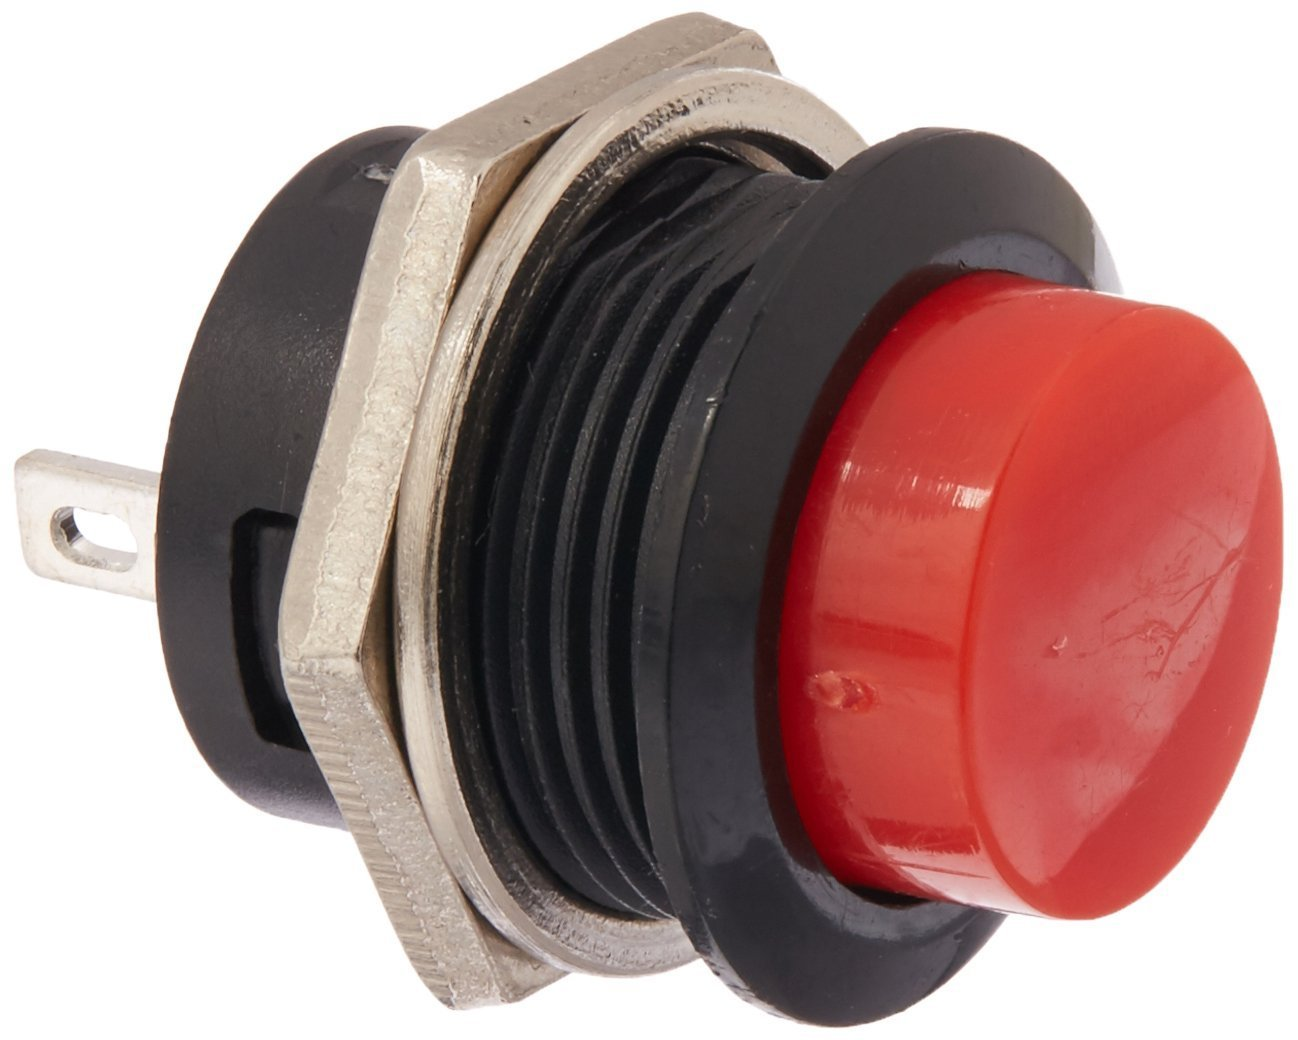 Spst No Momentary Push Button Switch 2 Terminals Ac 6amp 125v 3amp Wire For Car Autoin 250v Mini Red Cap 5 Pack Industrial Scientific